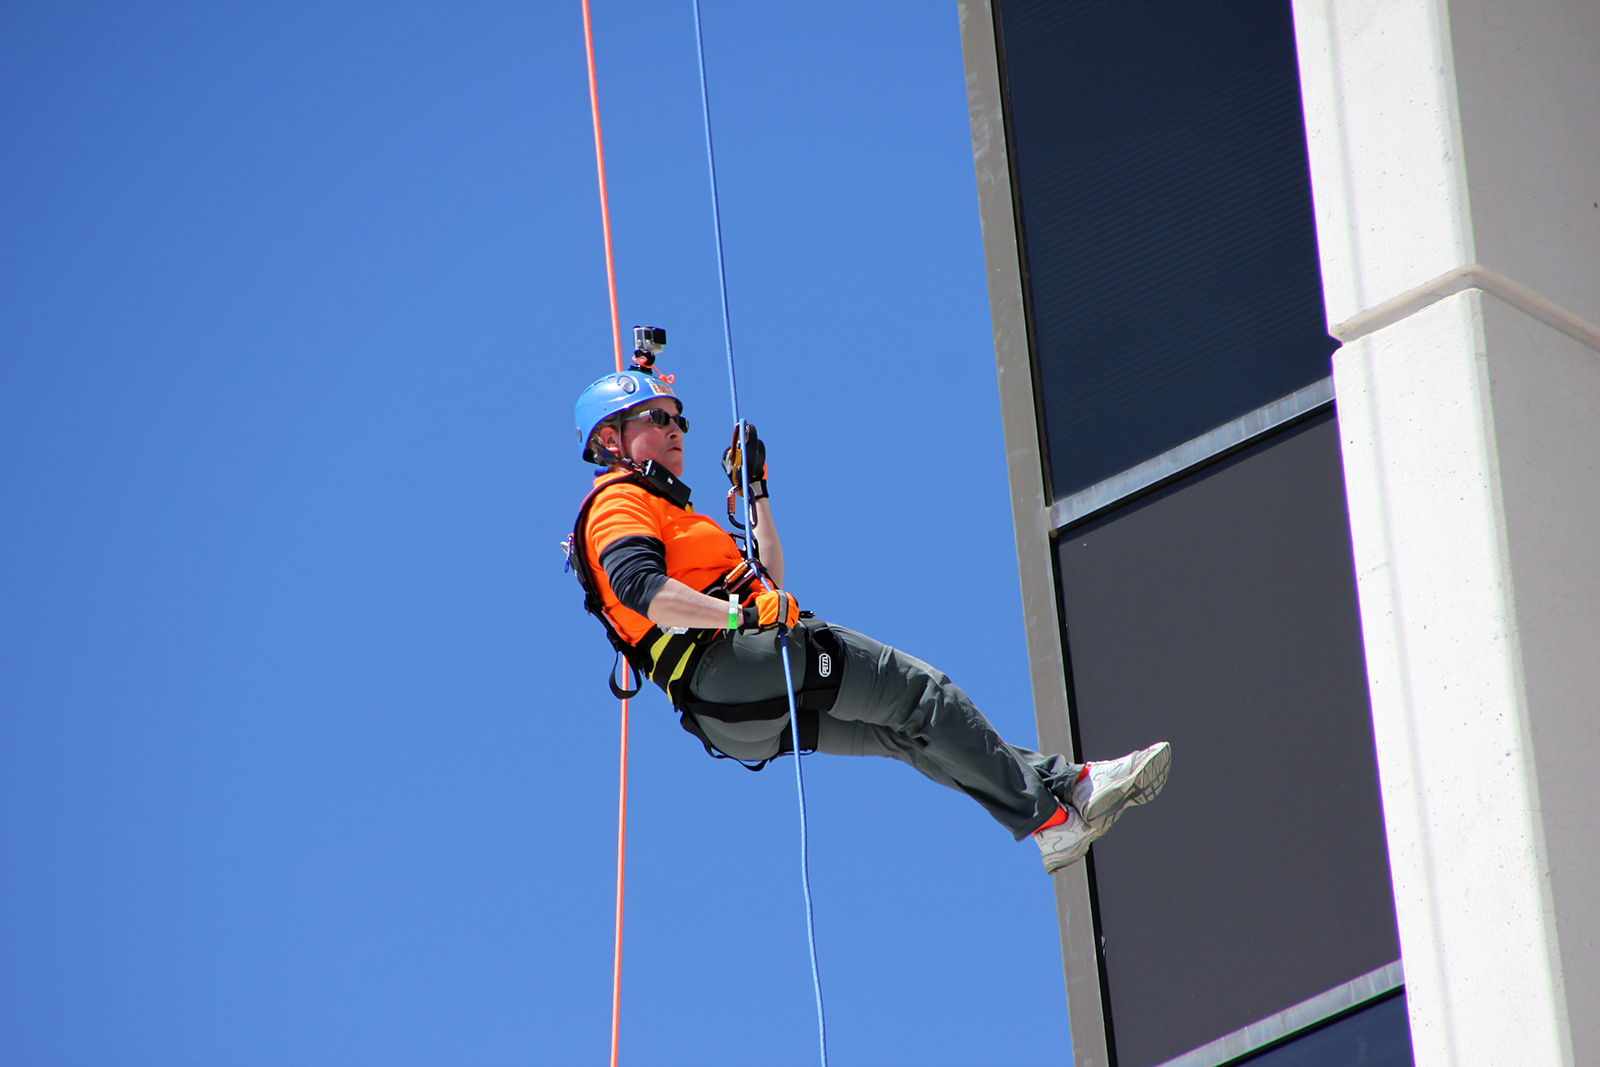 Worker on a rope repelling down a building